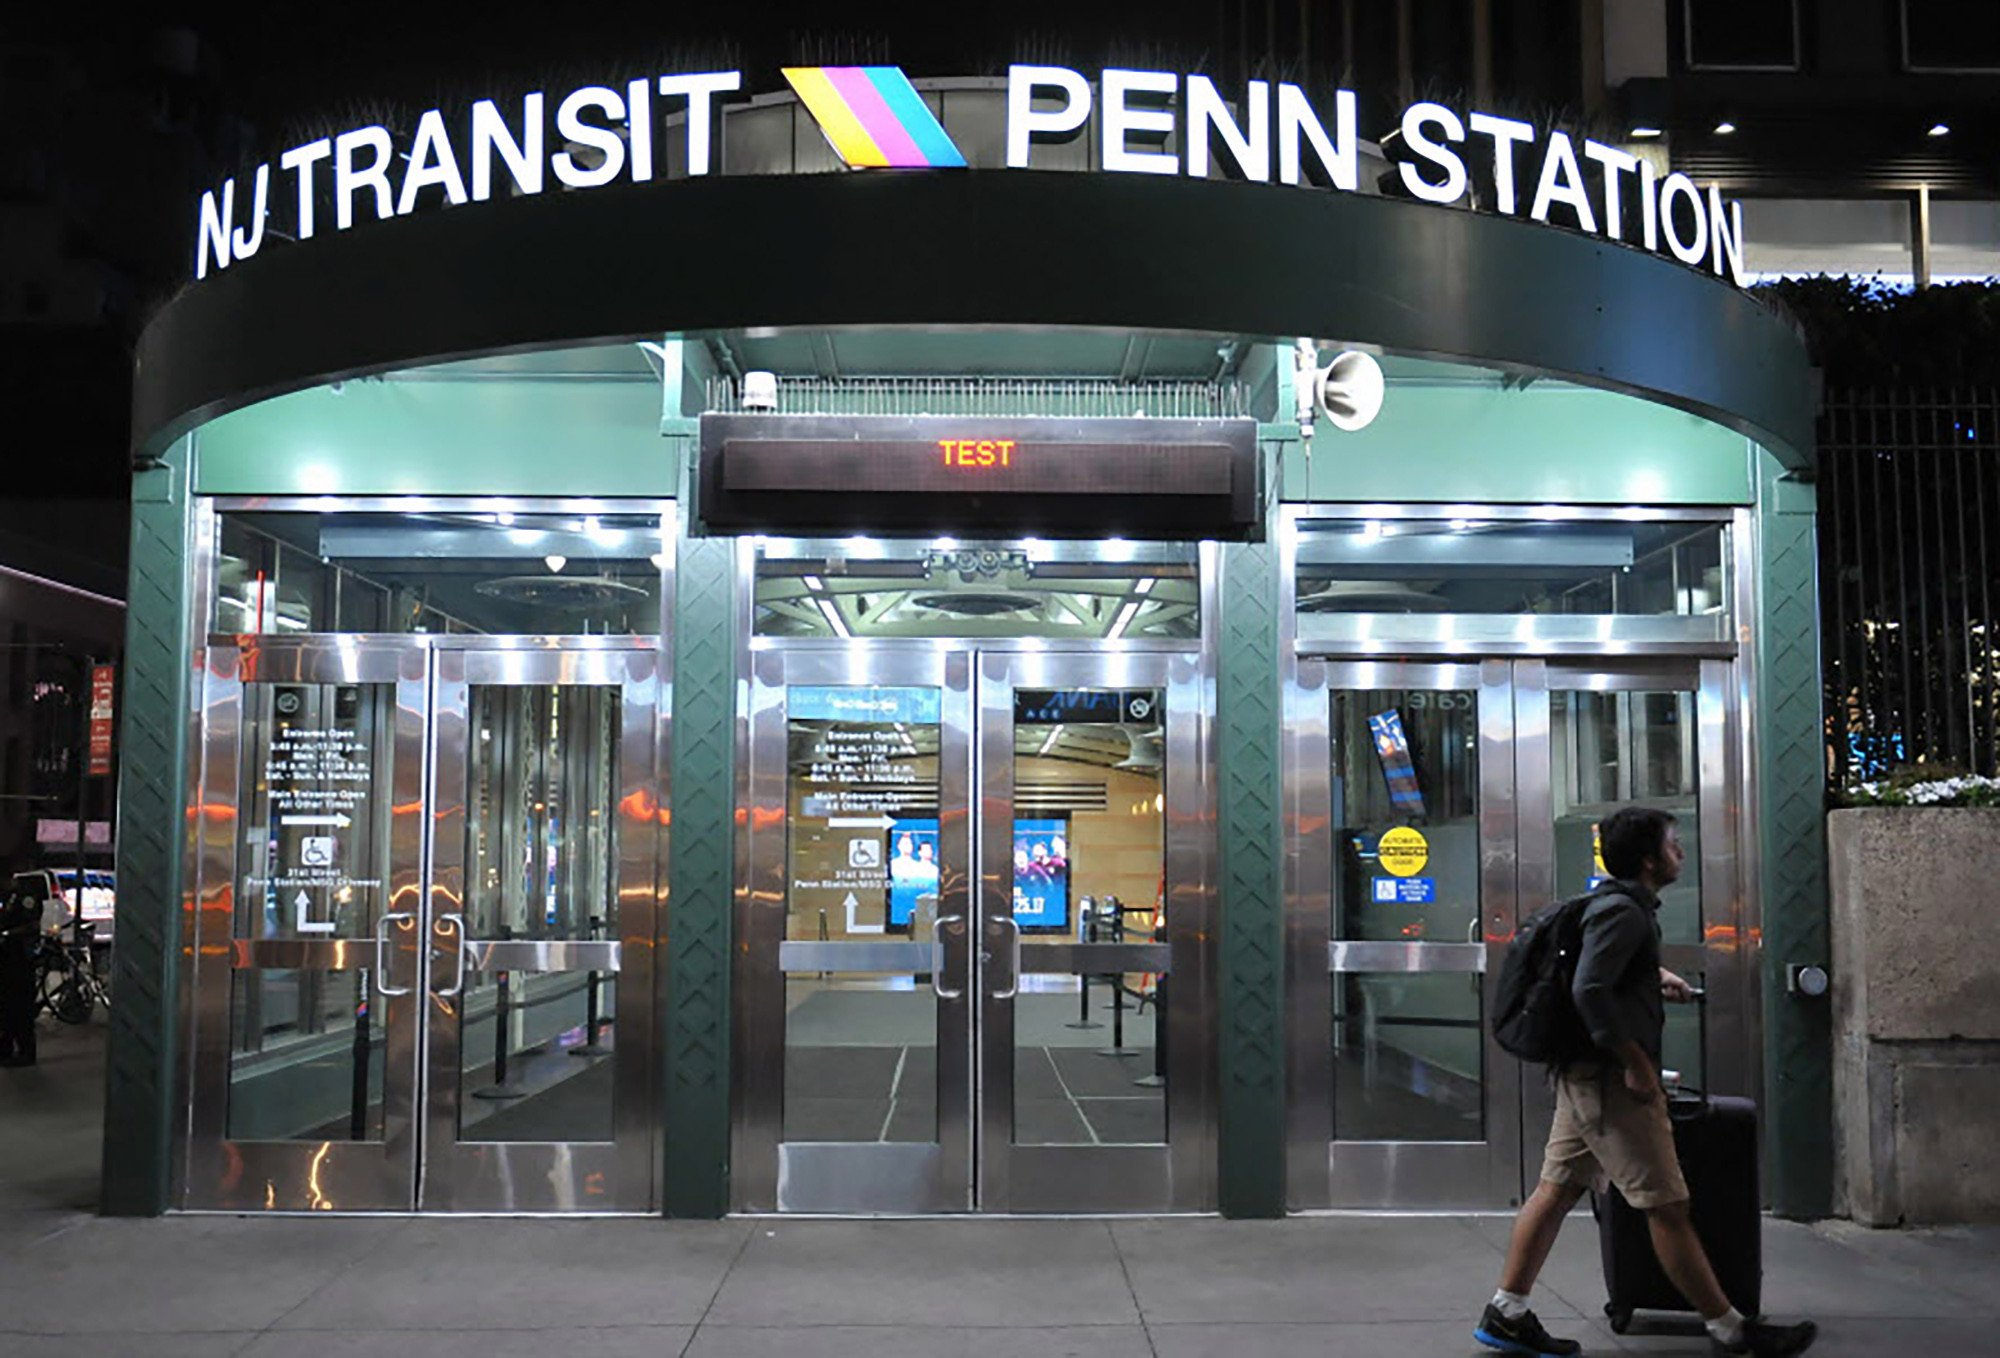 Penn Station problems cause more headaches for morning commute